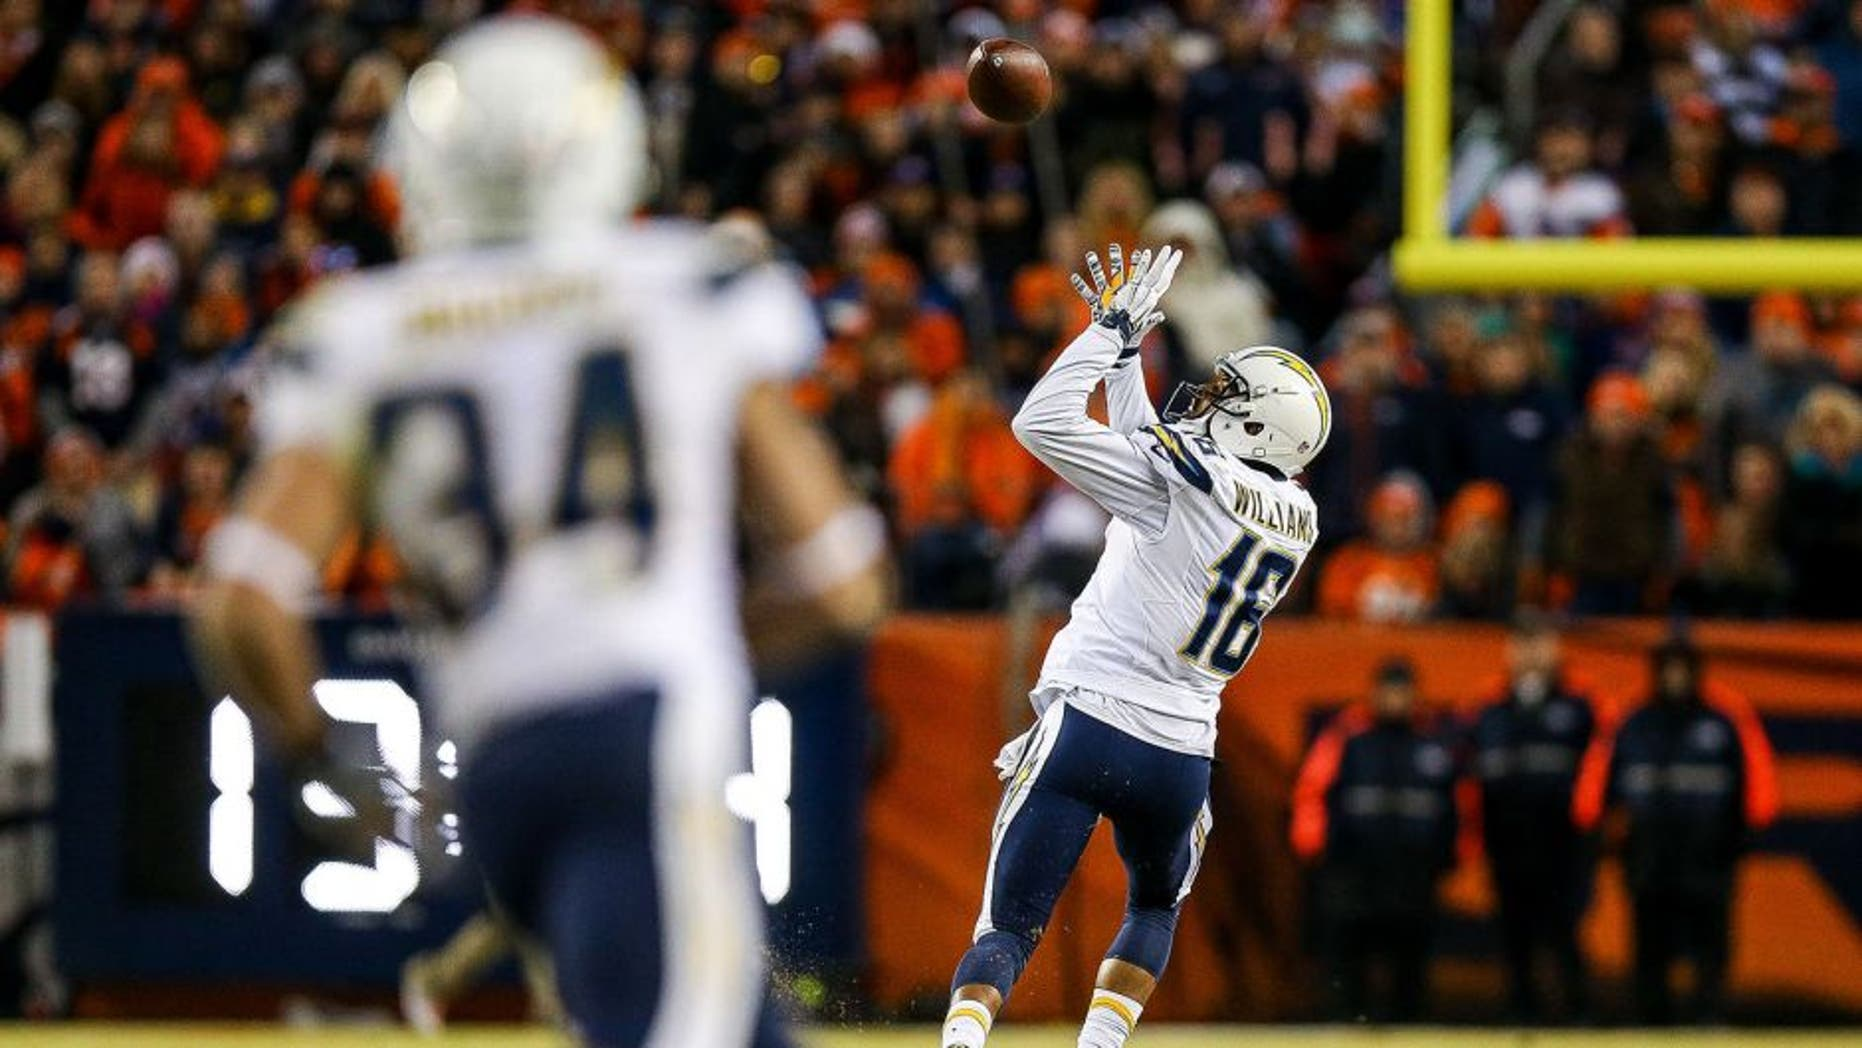 DENVER, CO - JANUARY 3: Wide receiver Tyrell Williams #16 of the San Diego Chargers catches a pass for an 80-yard touchdown against the Denver Broncos in the fourth quarter of a game at Sports Authority Field at Mile High on January 3, 2016 in Denver, Colorado. The catch was the first of Williams' NFL career. (Photo by Justin Edmonds/Getty Images)